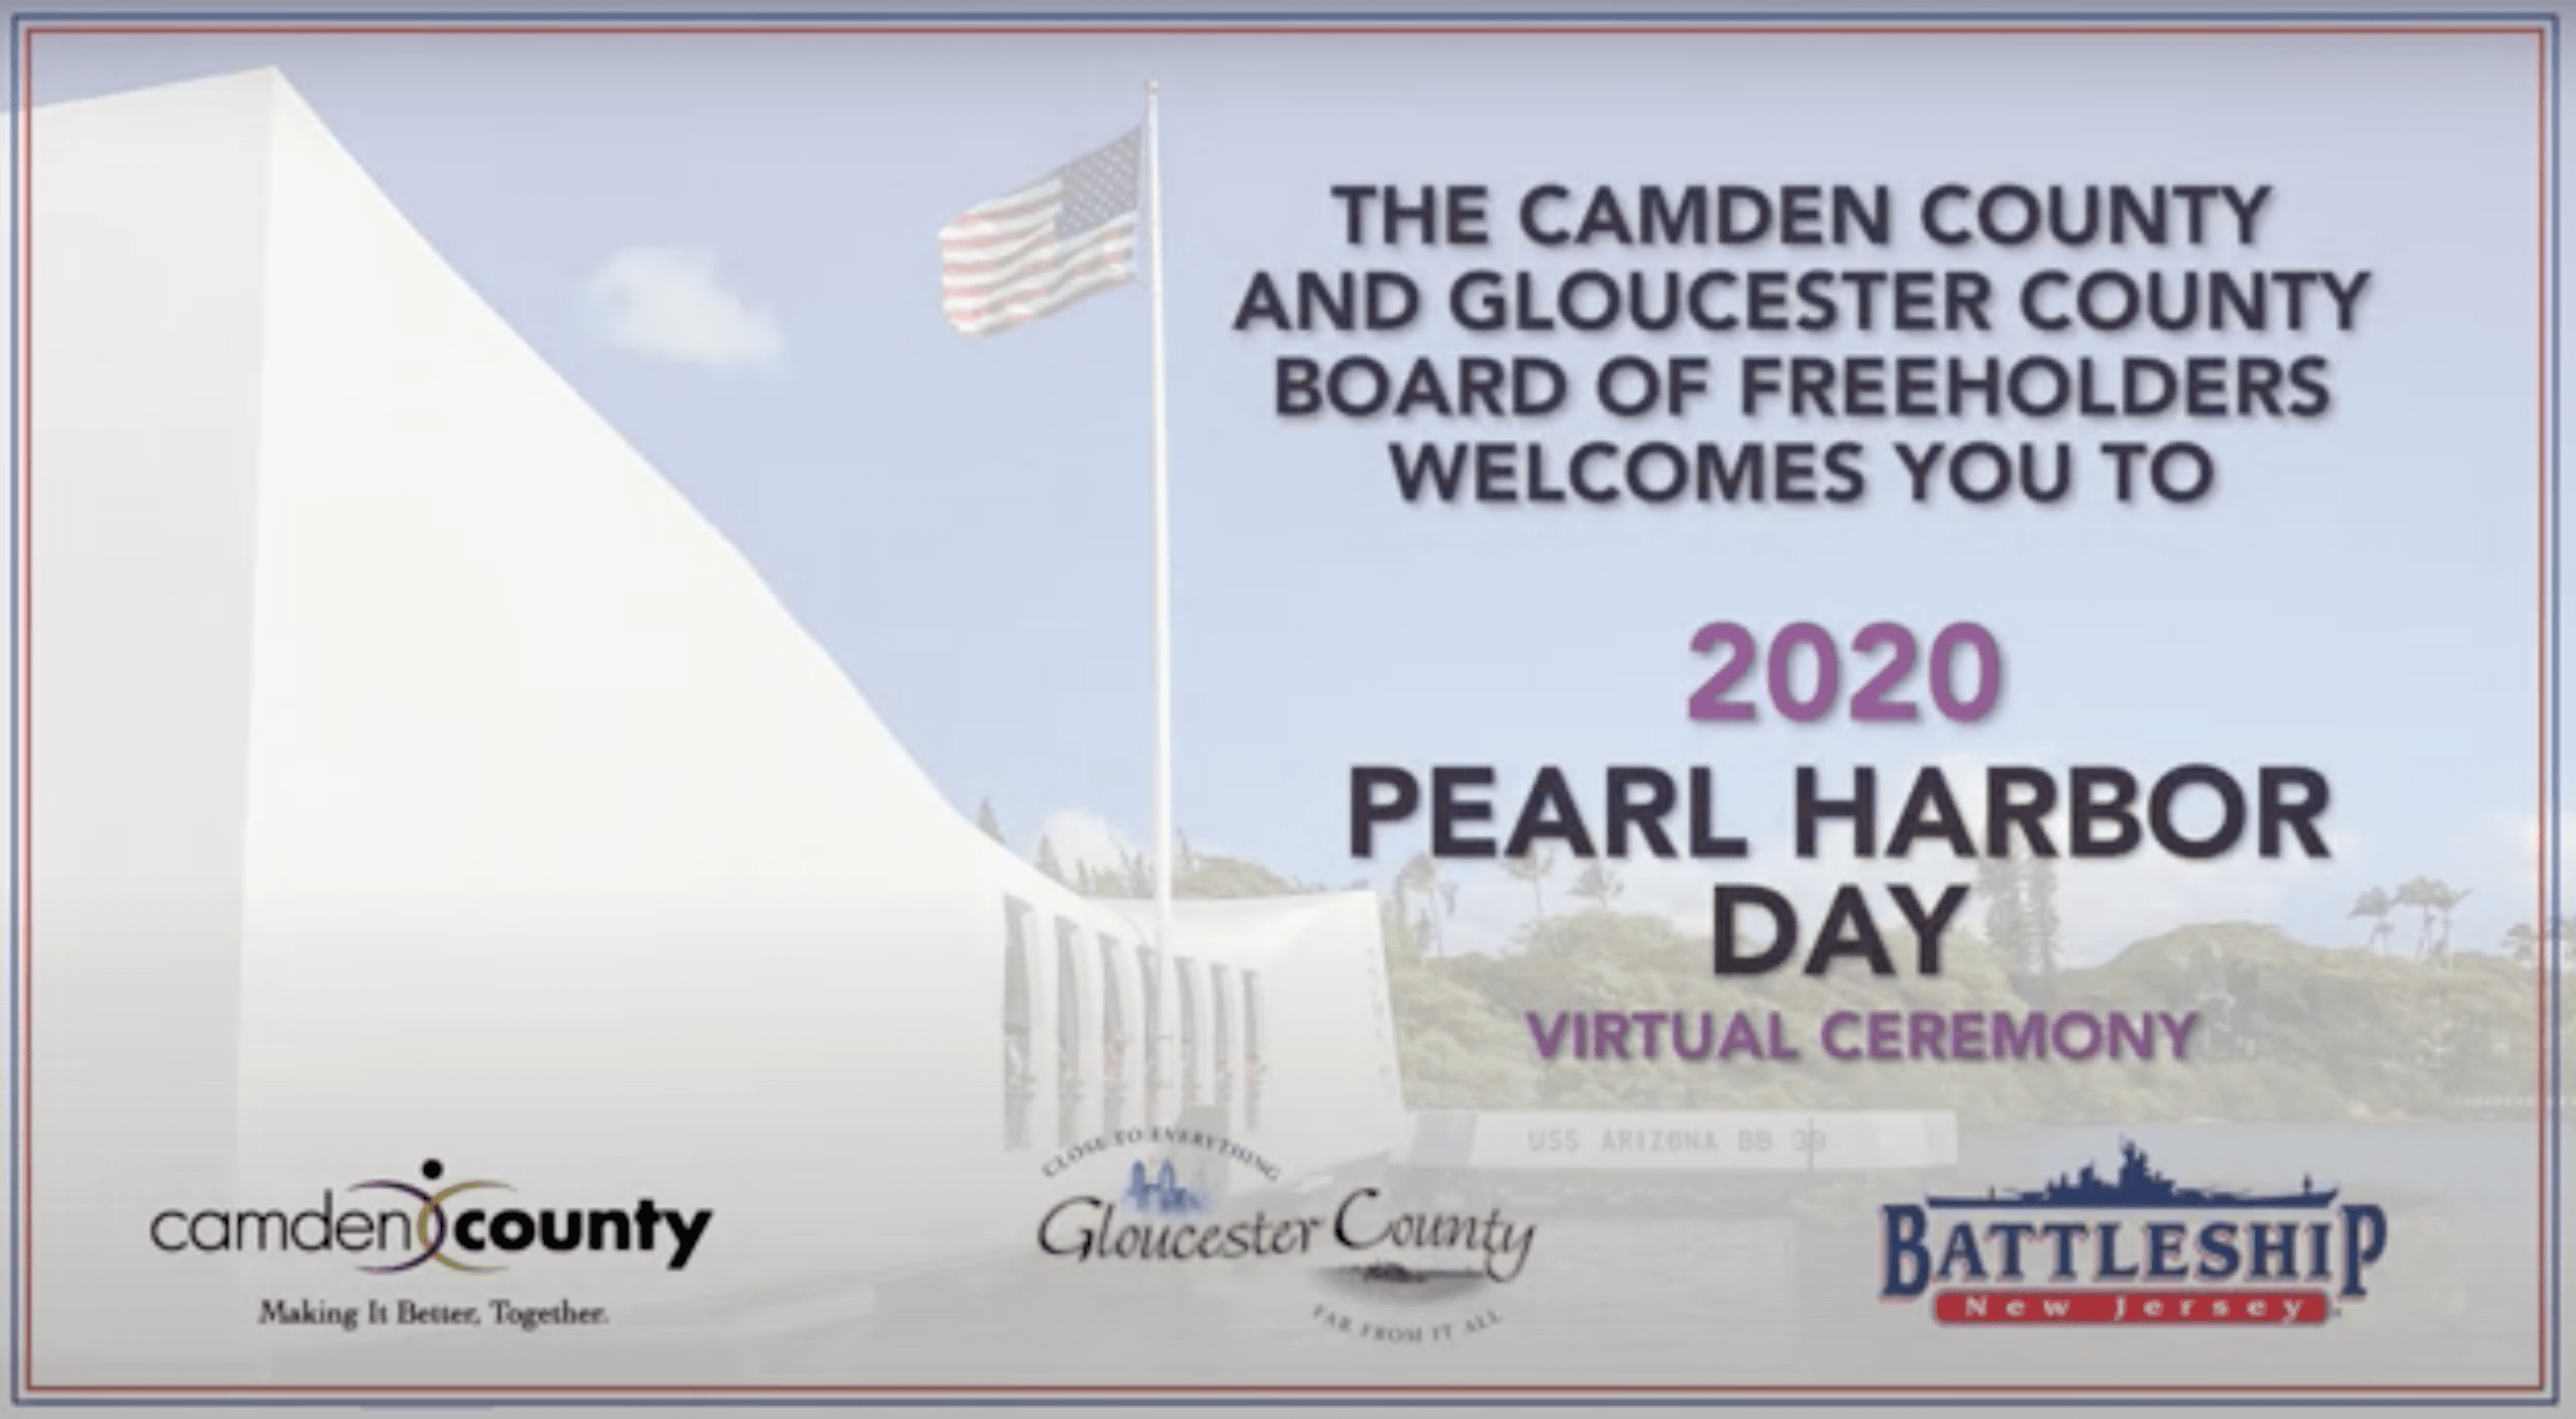 Gloucester County and Camden County Pearl Harbor Day Ceremony